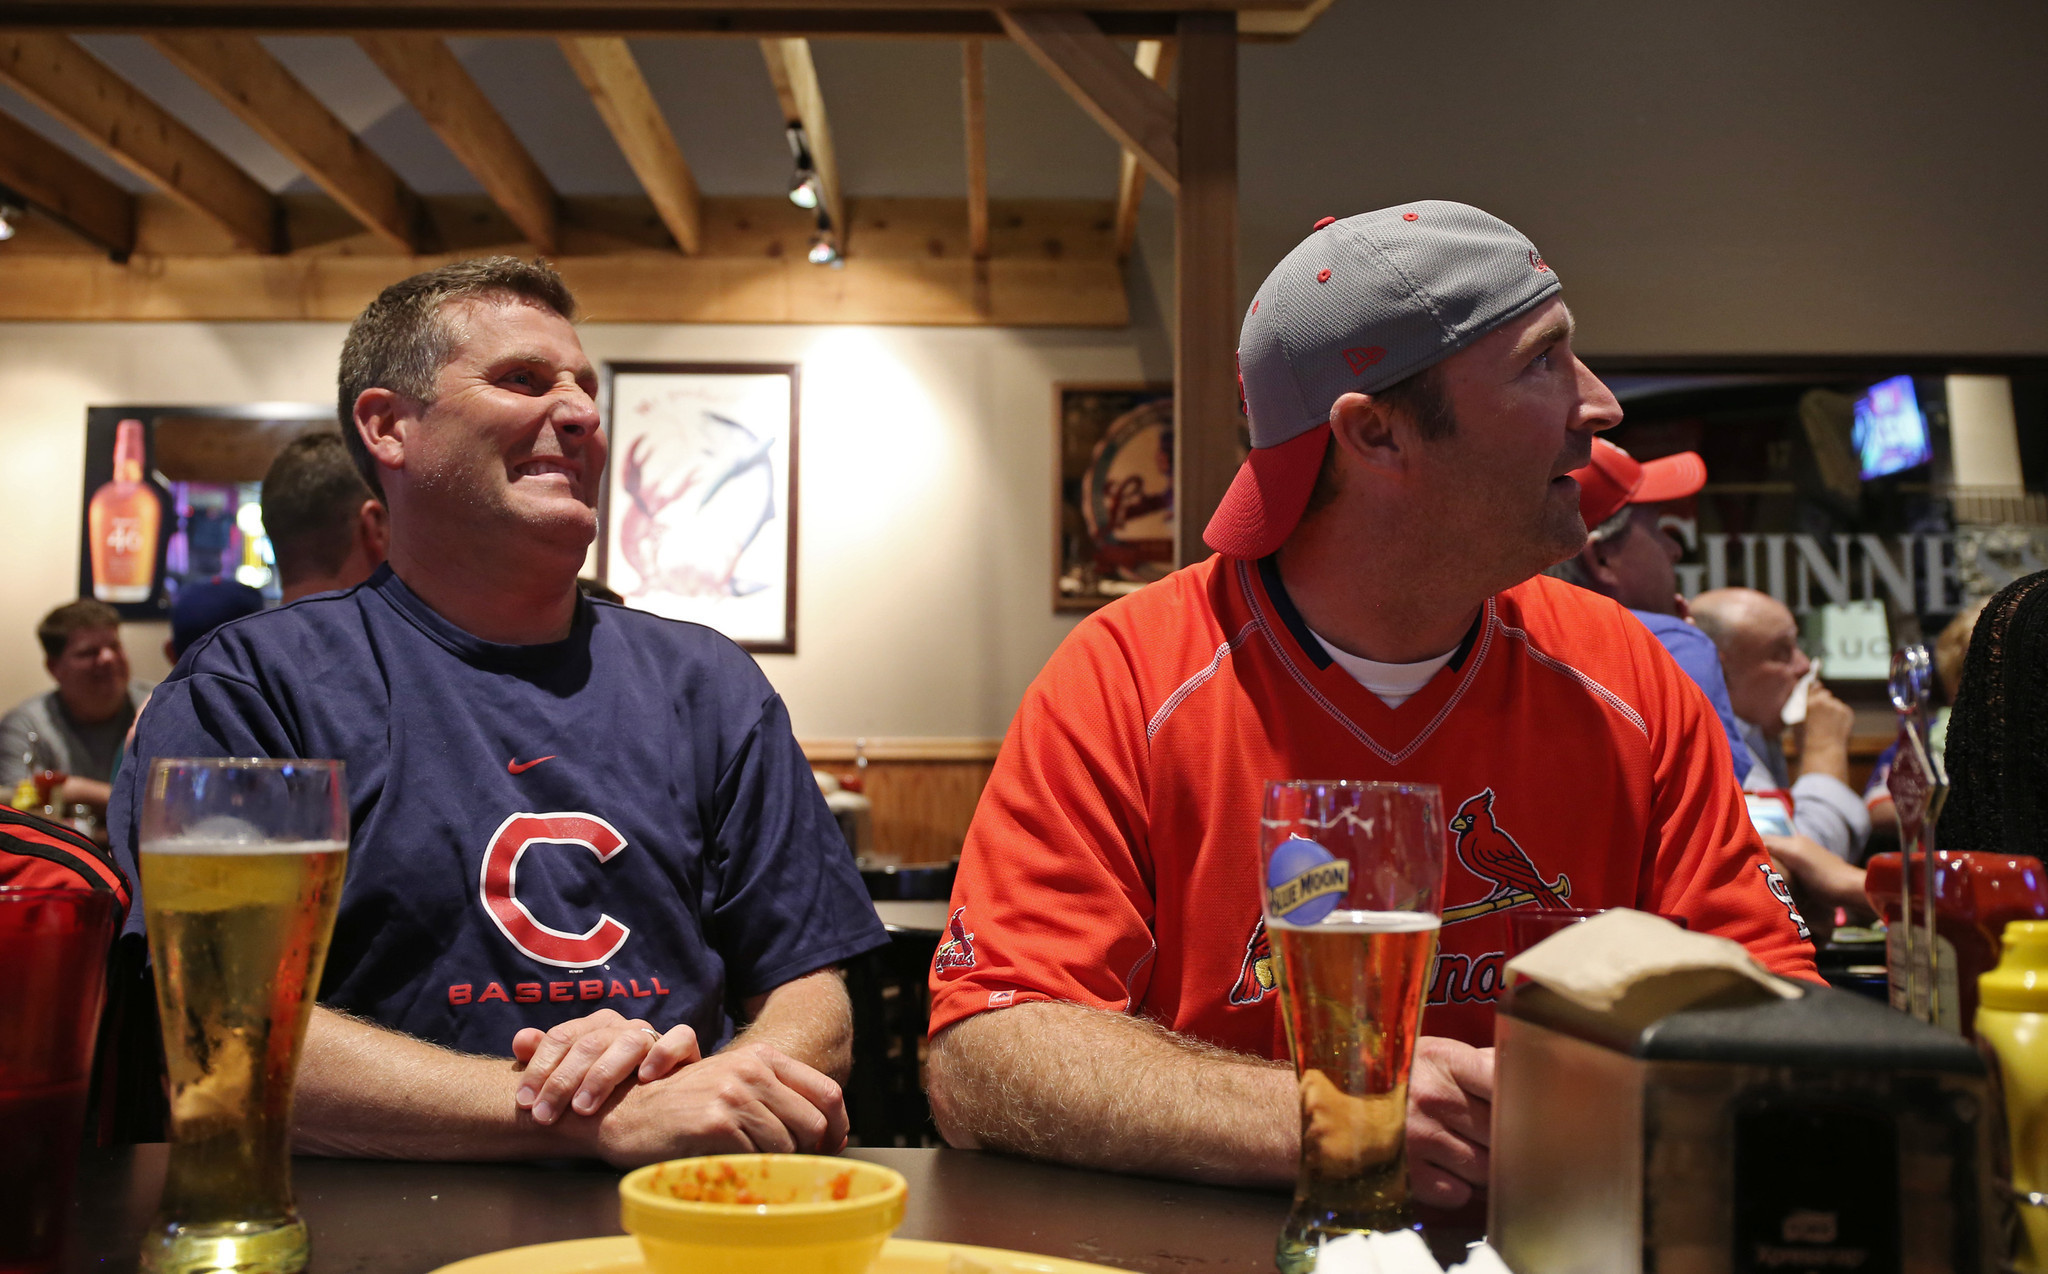 cubs, cardinals fans found in surprising places, according  ~ Wand Tv Cubs